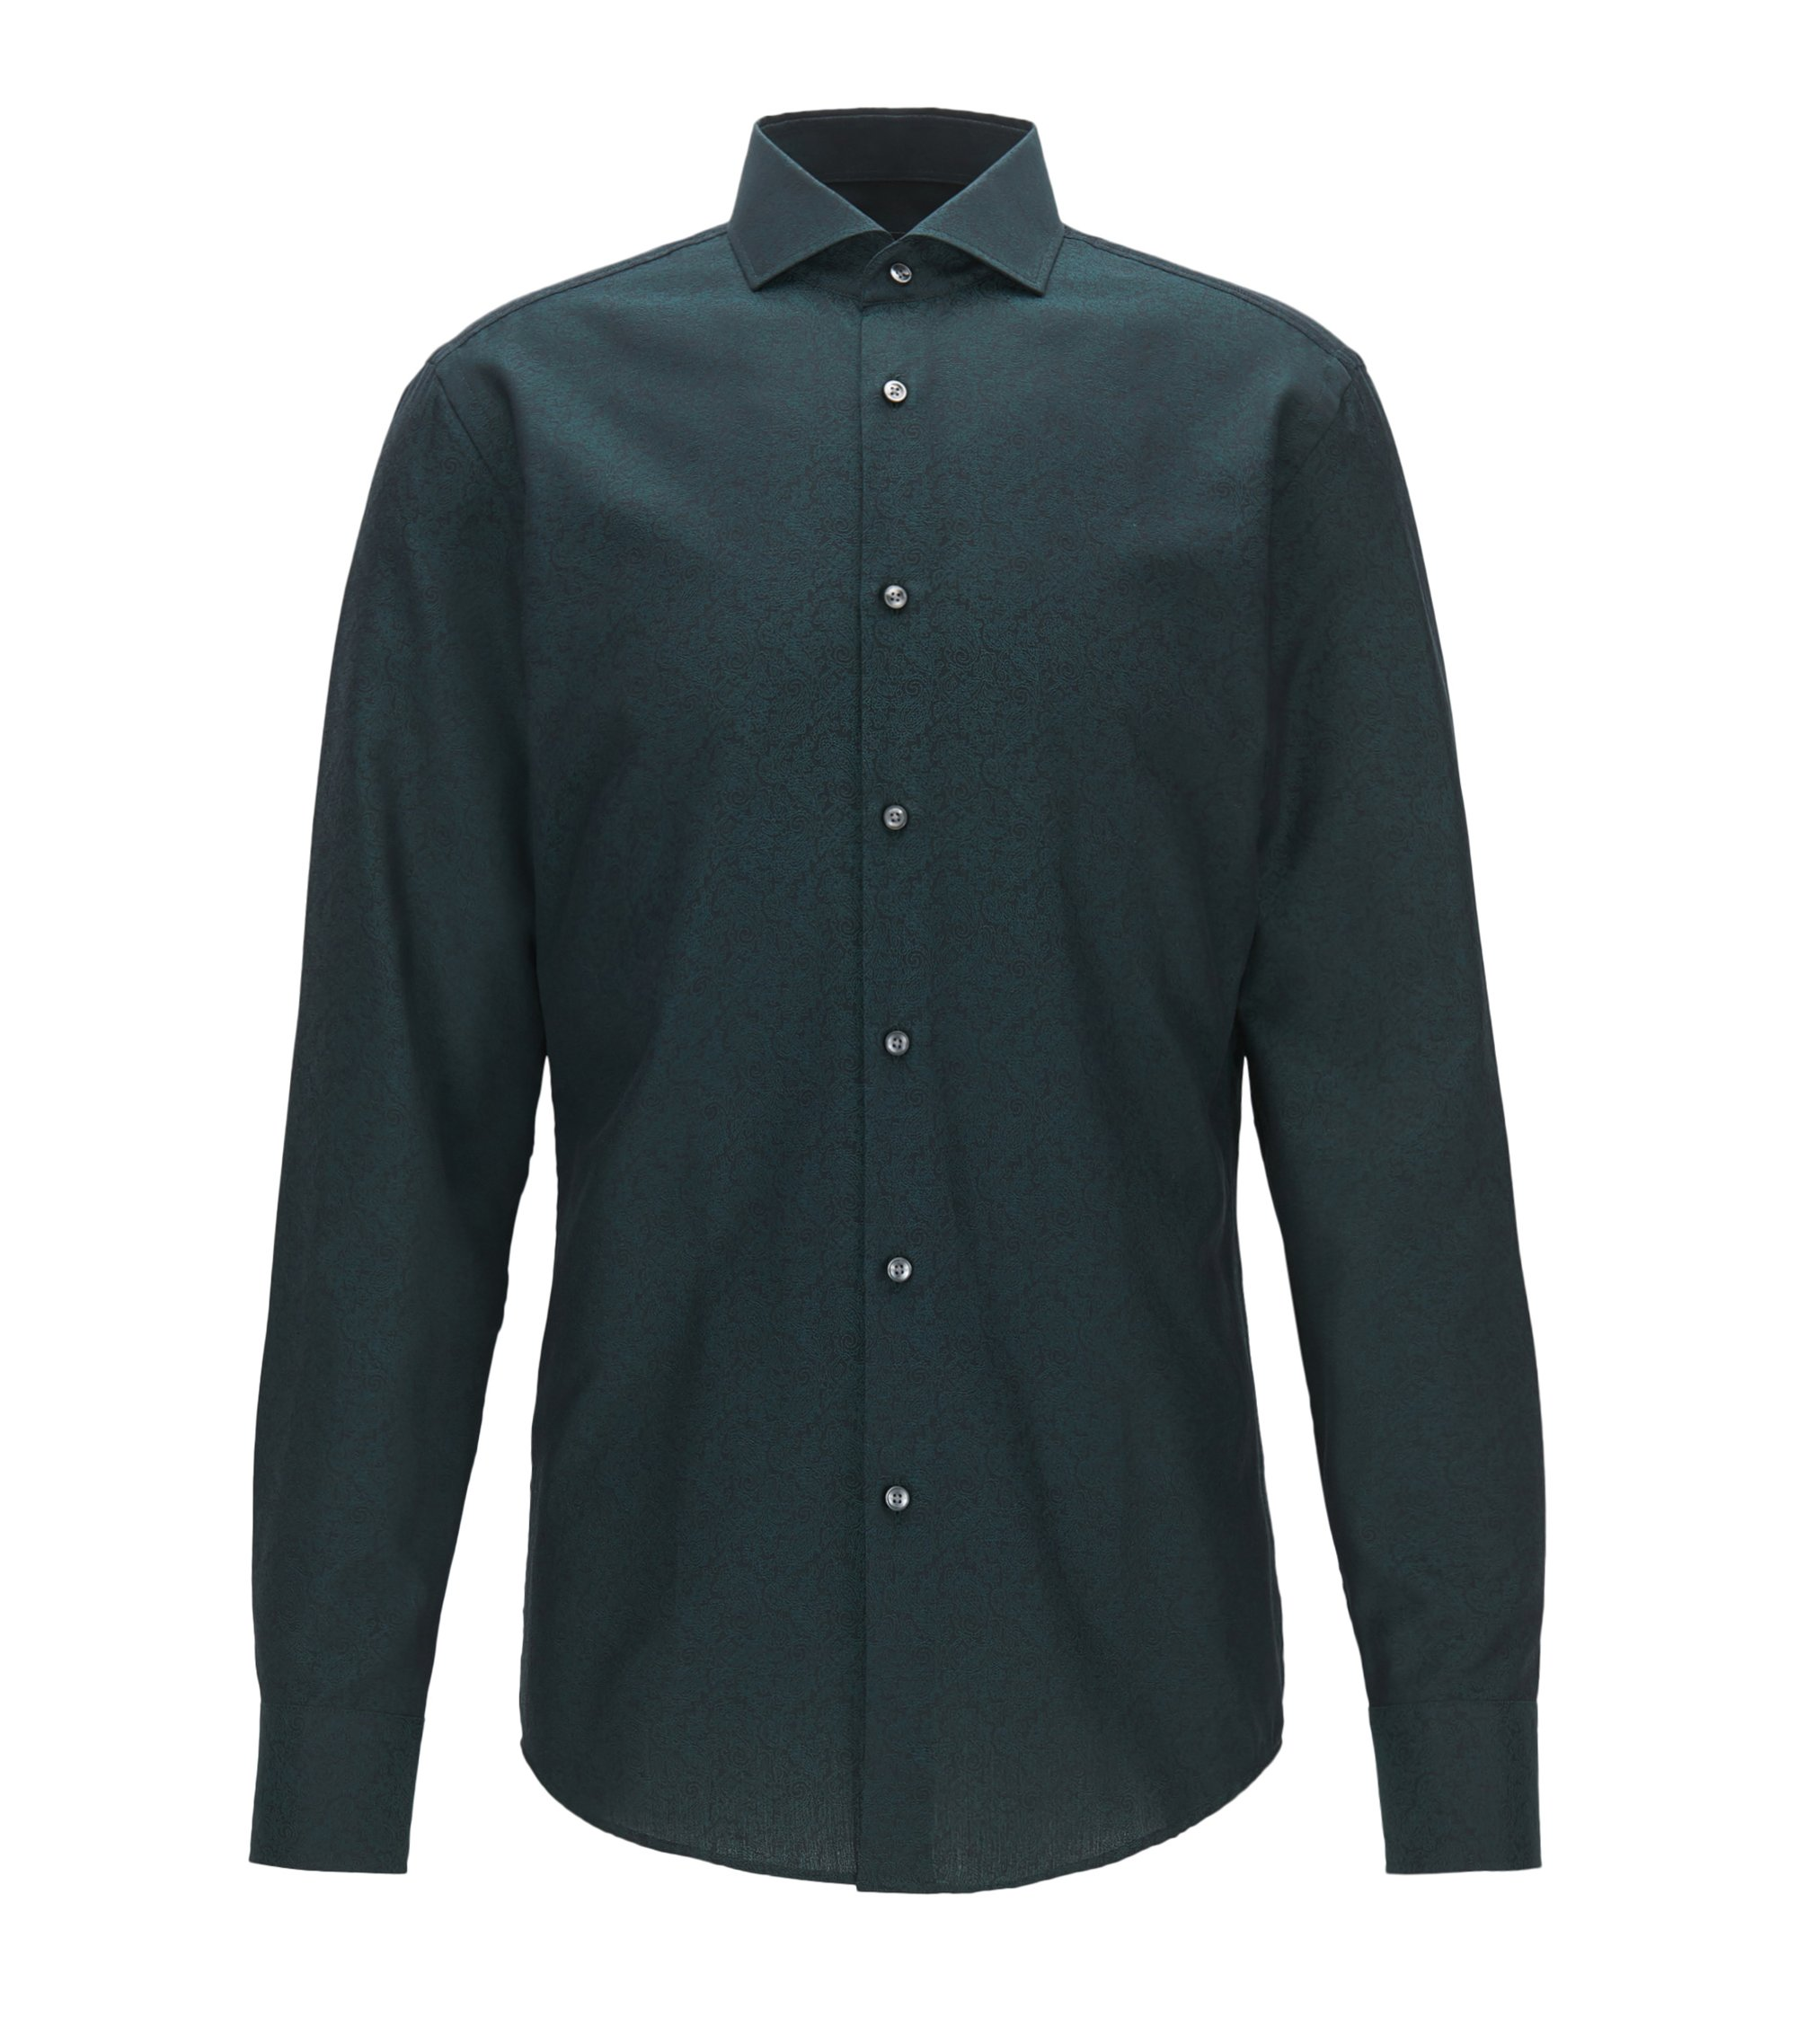 Paisley slim-fit shirt in cotton jacquard, Patterned